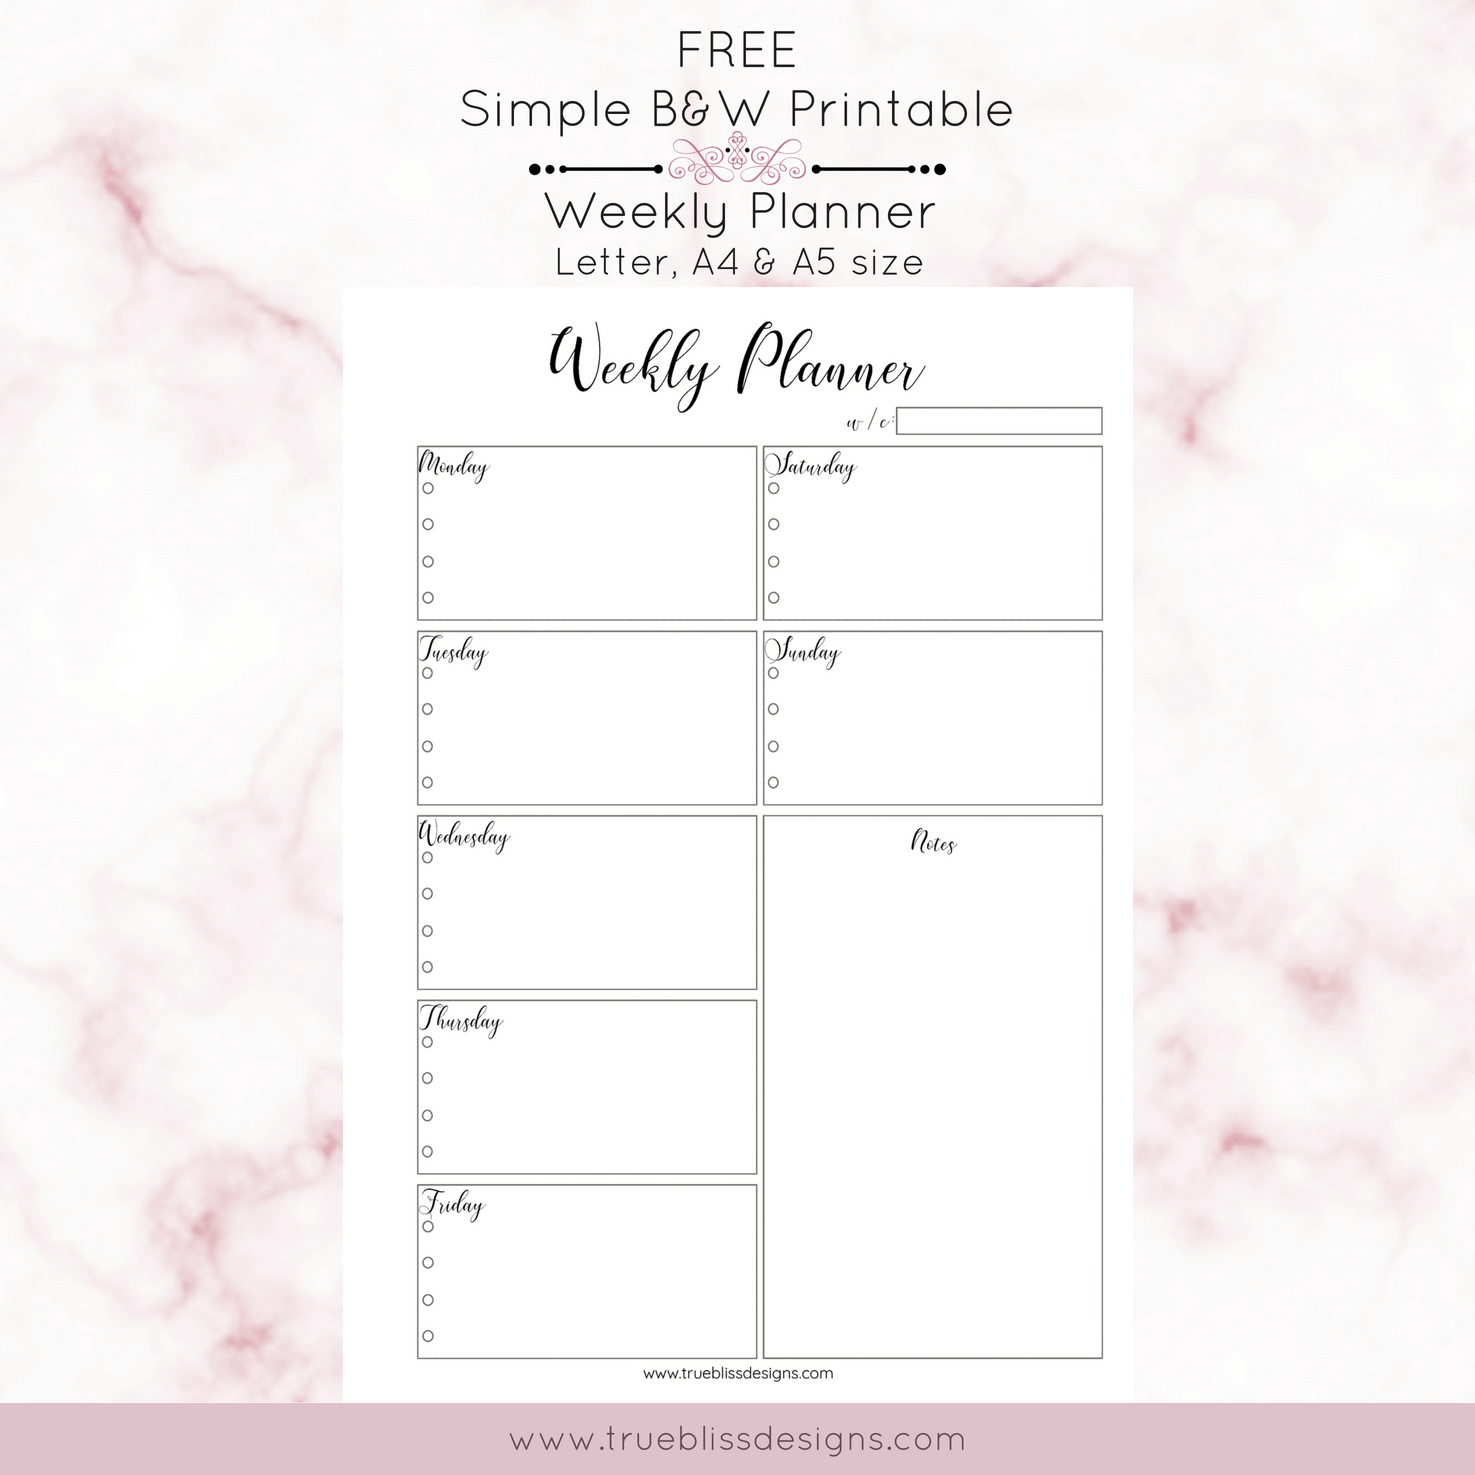 image relating to Free Weekly Planner Printables known as Basic Black and White Printable Planners - Accurate Bliss Patterns